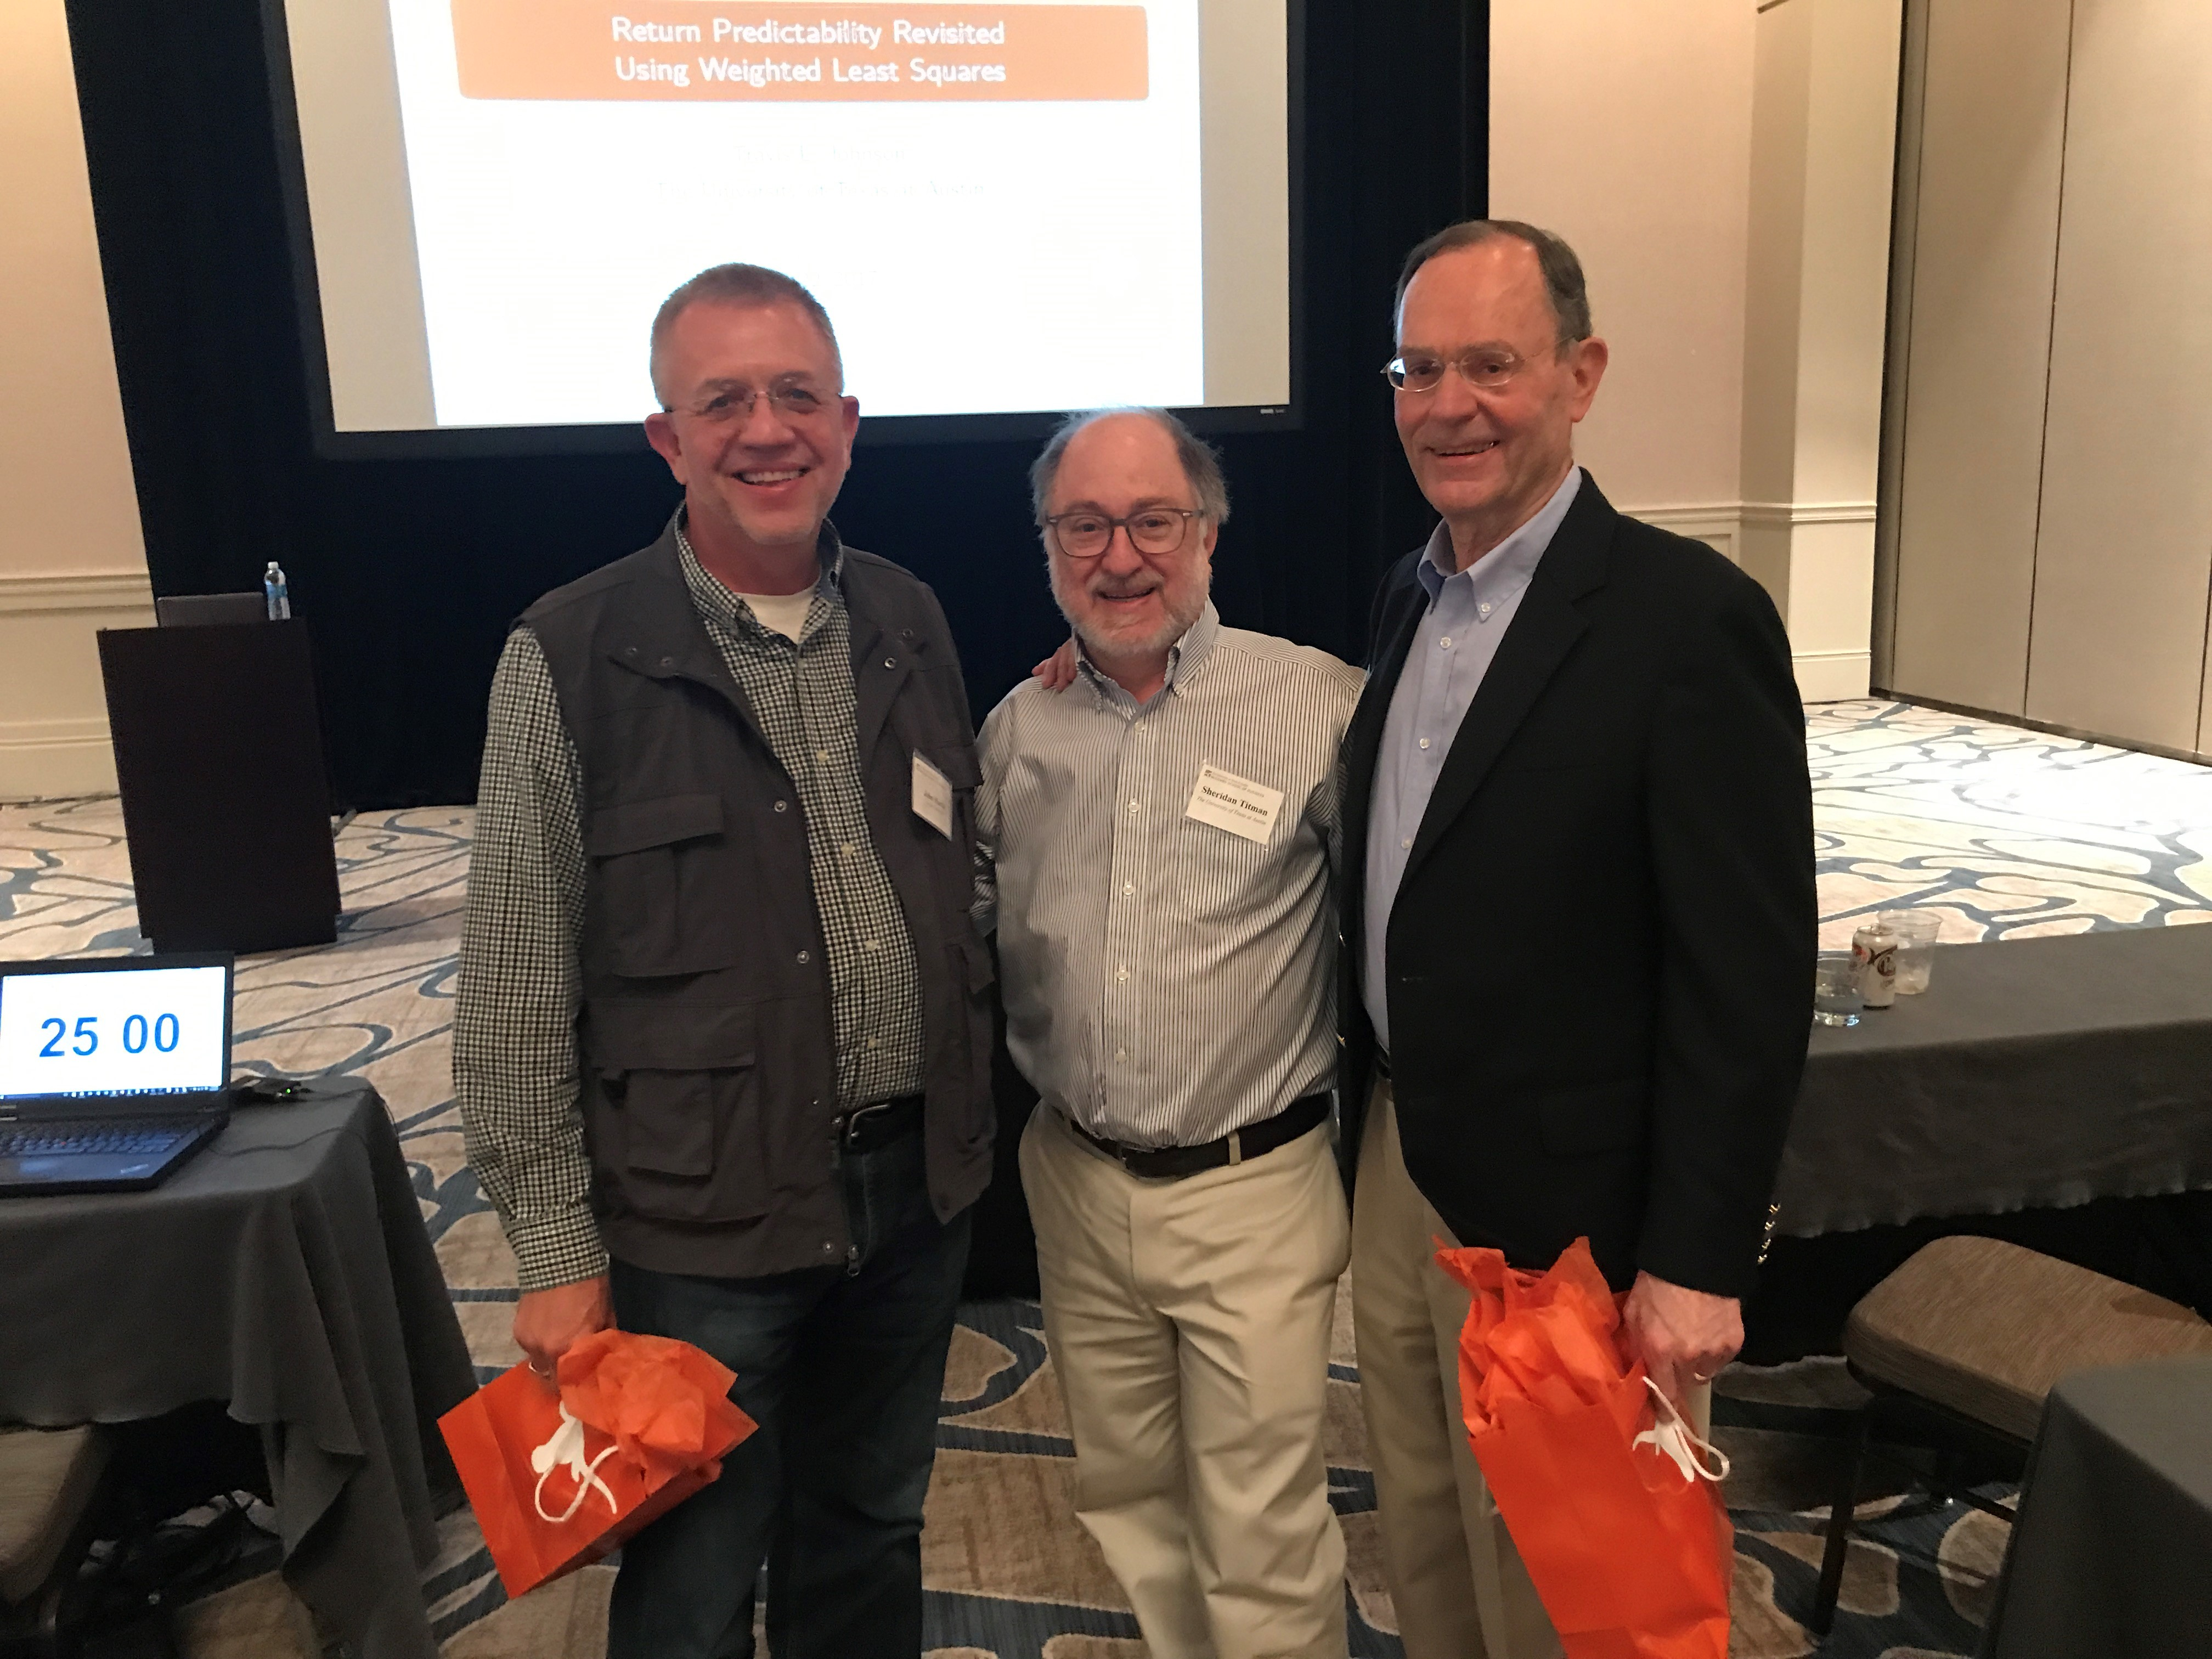 Bill and John honored at conference